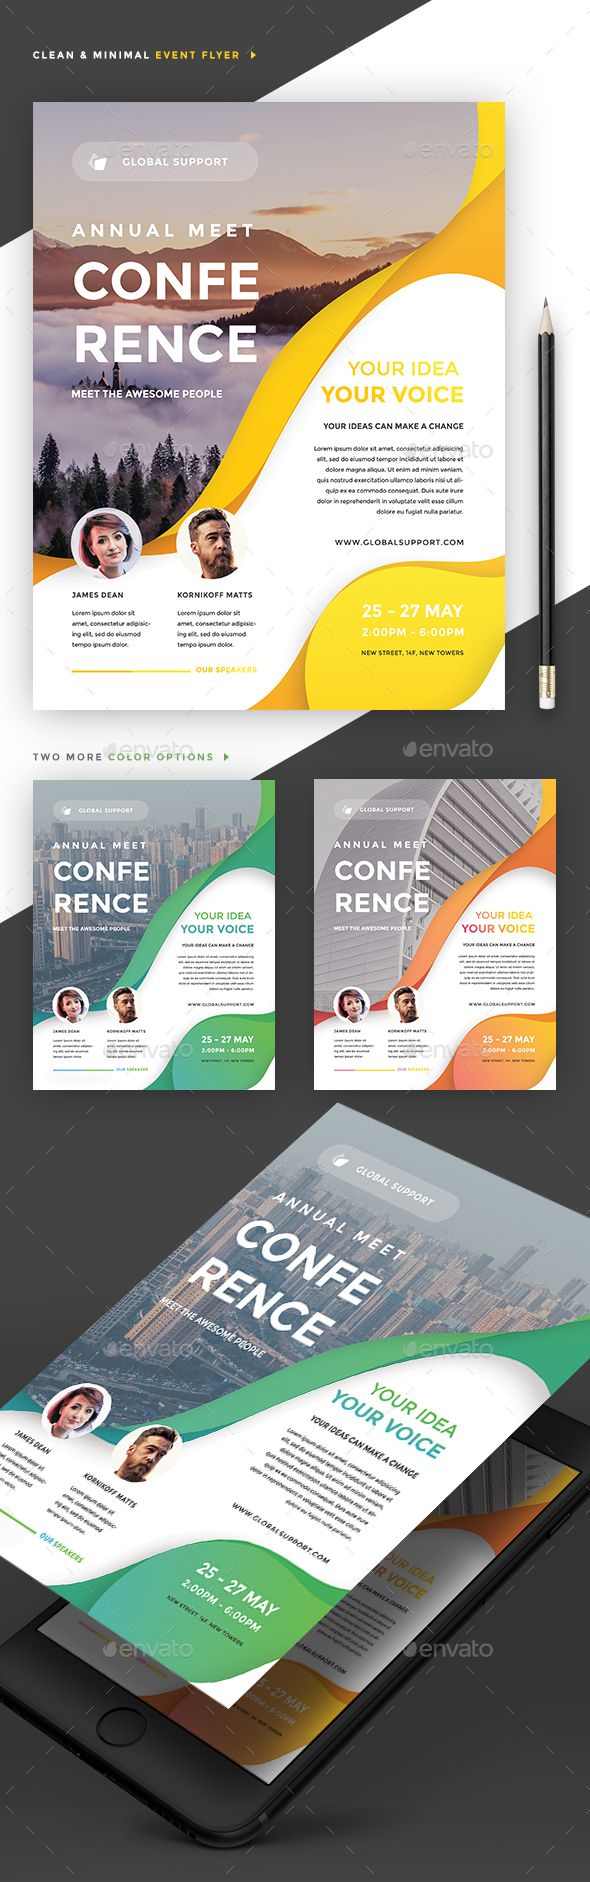 #Event Summit Conference #Flyer - Events Flyers Download here: graphicriver.net/...